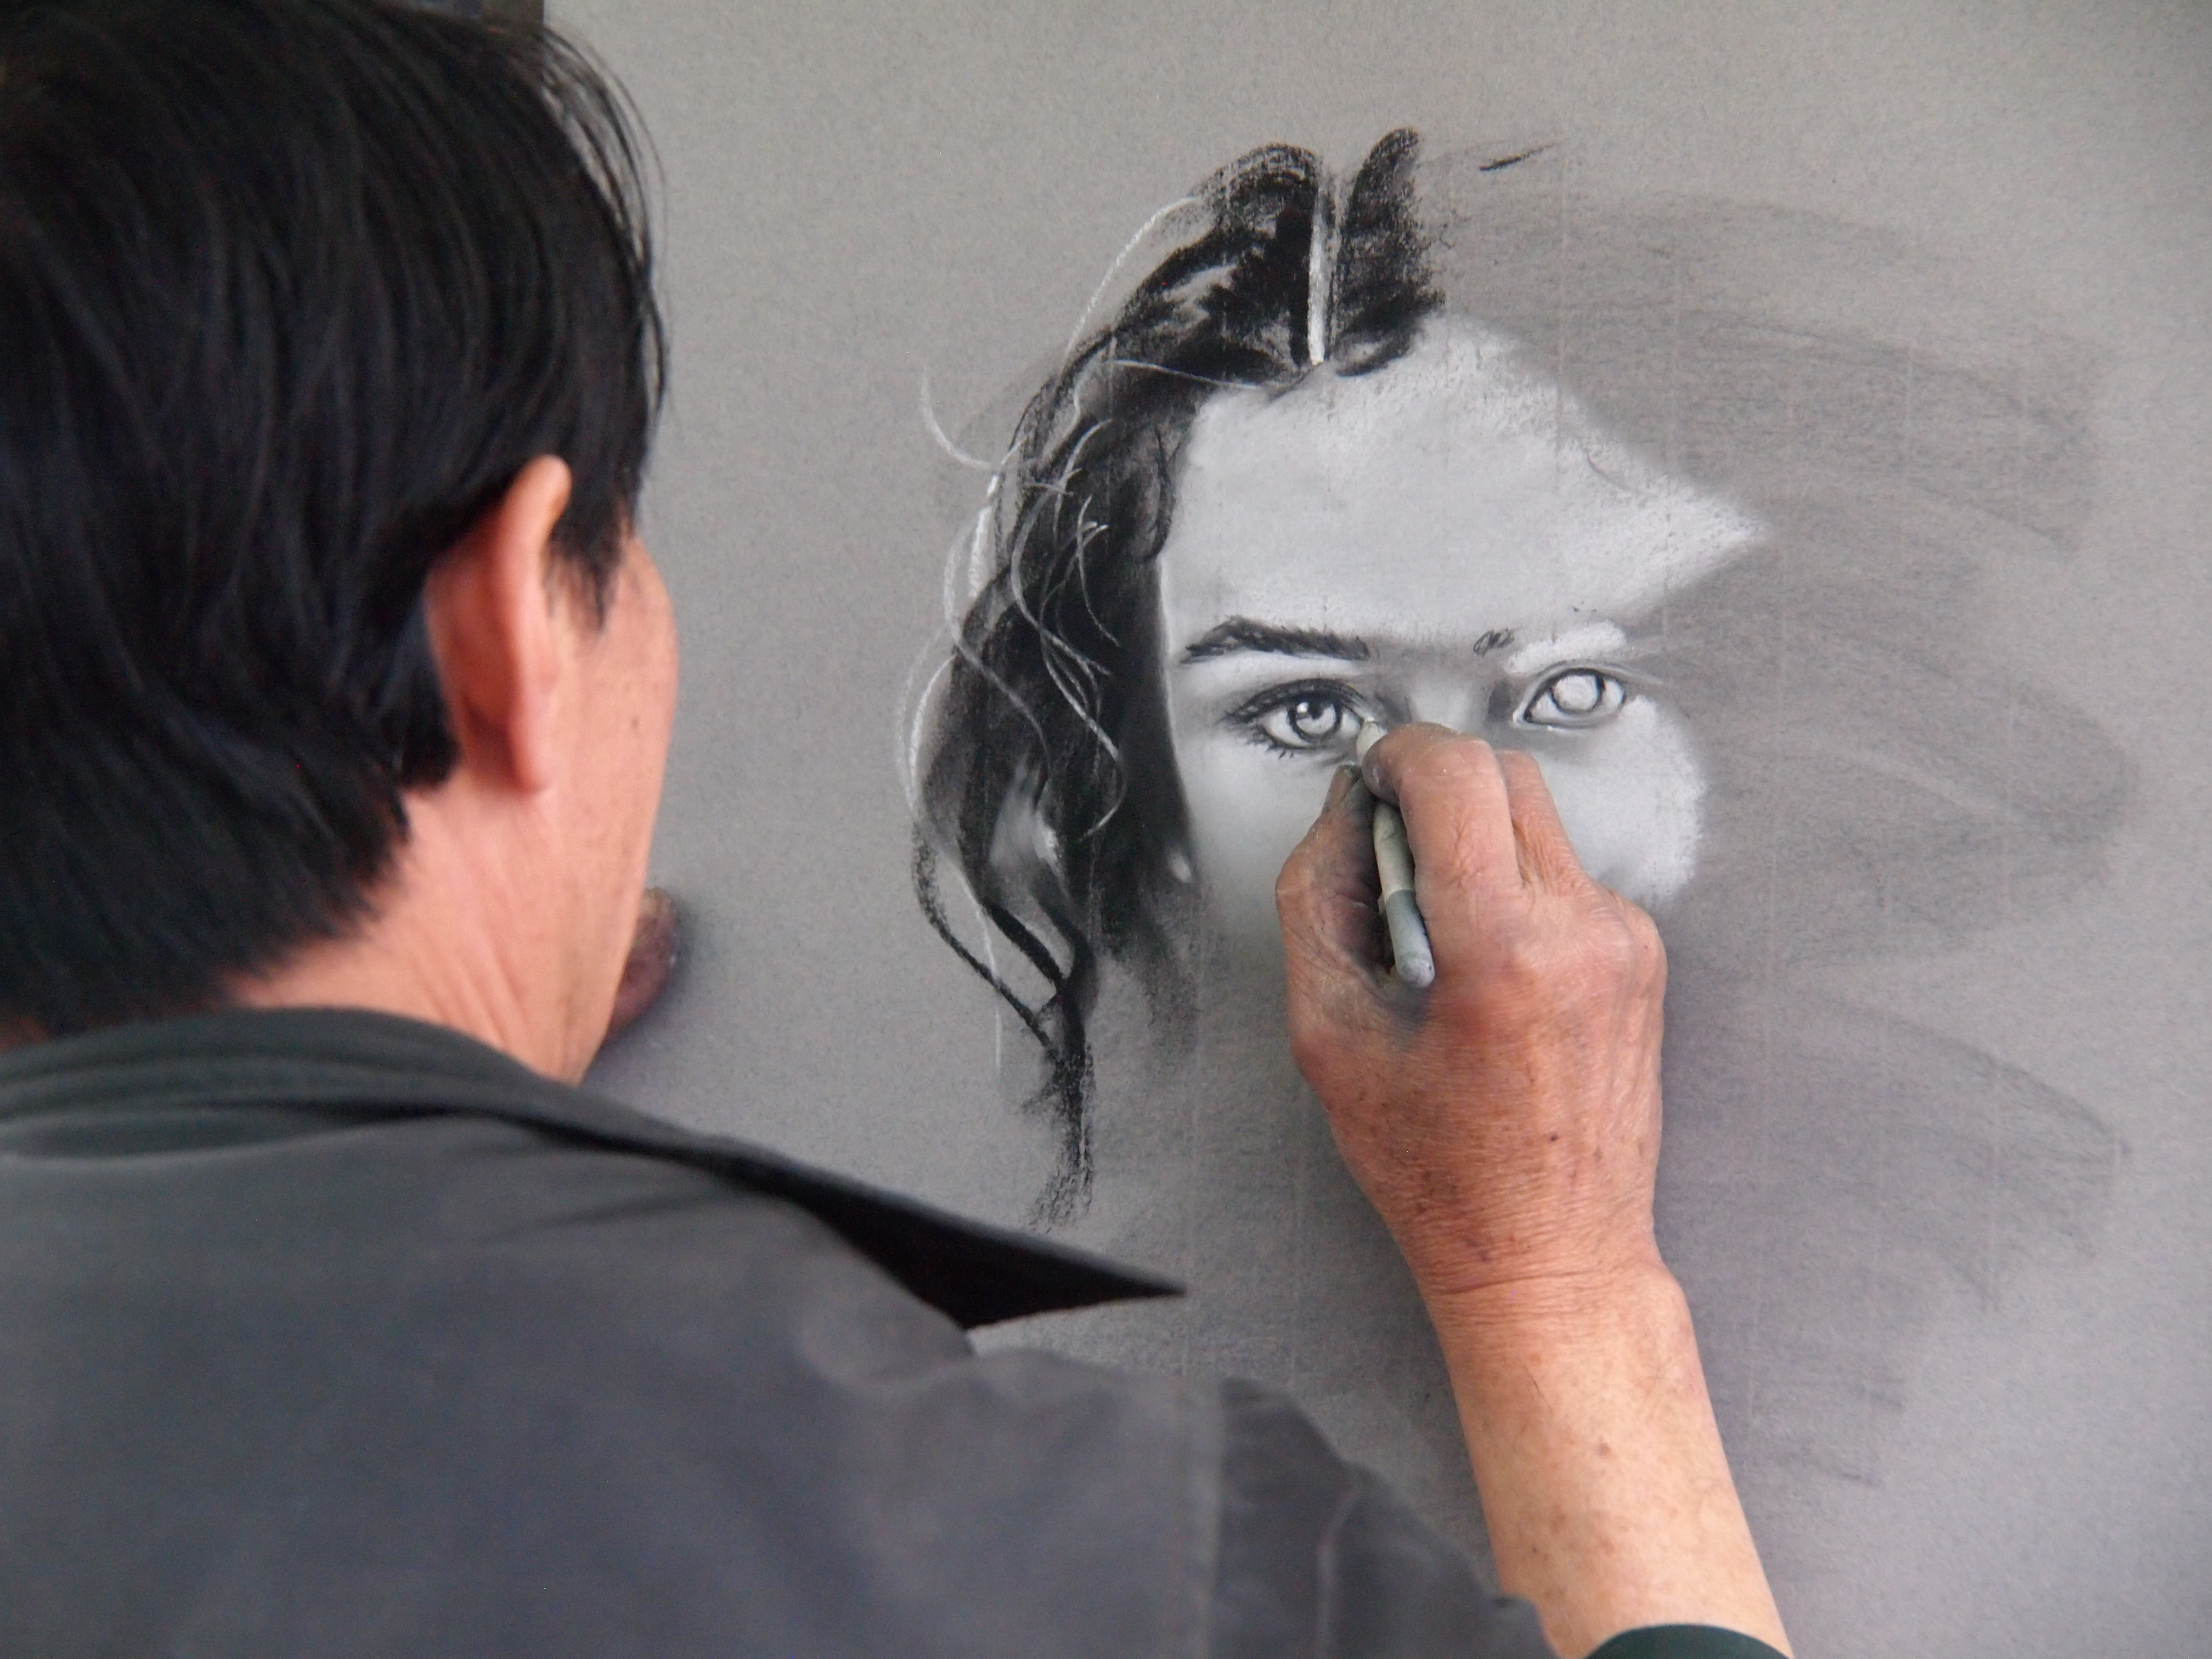 Looking from behind an artist working on an in-progress drawing of a girl's face